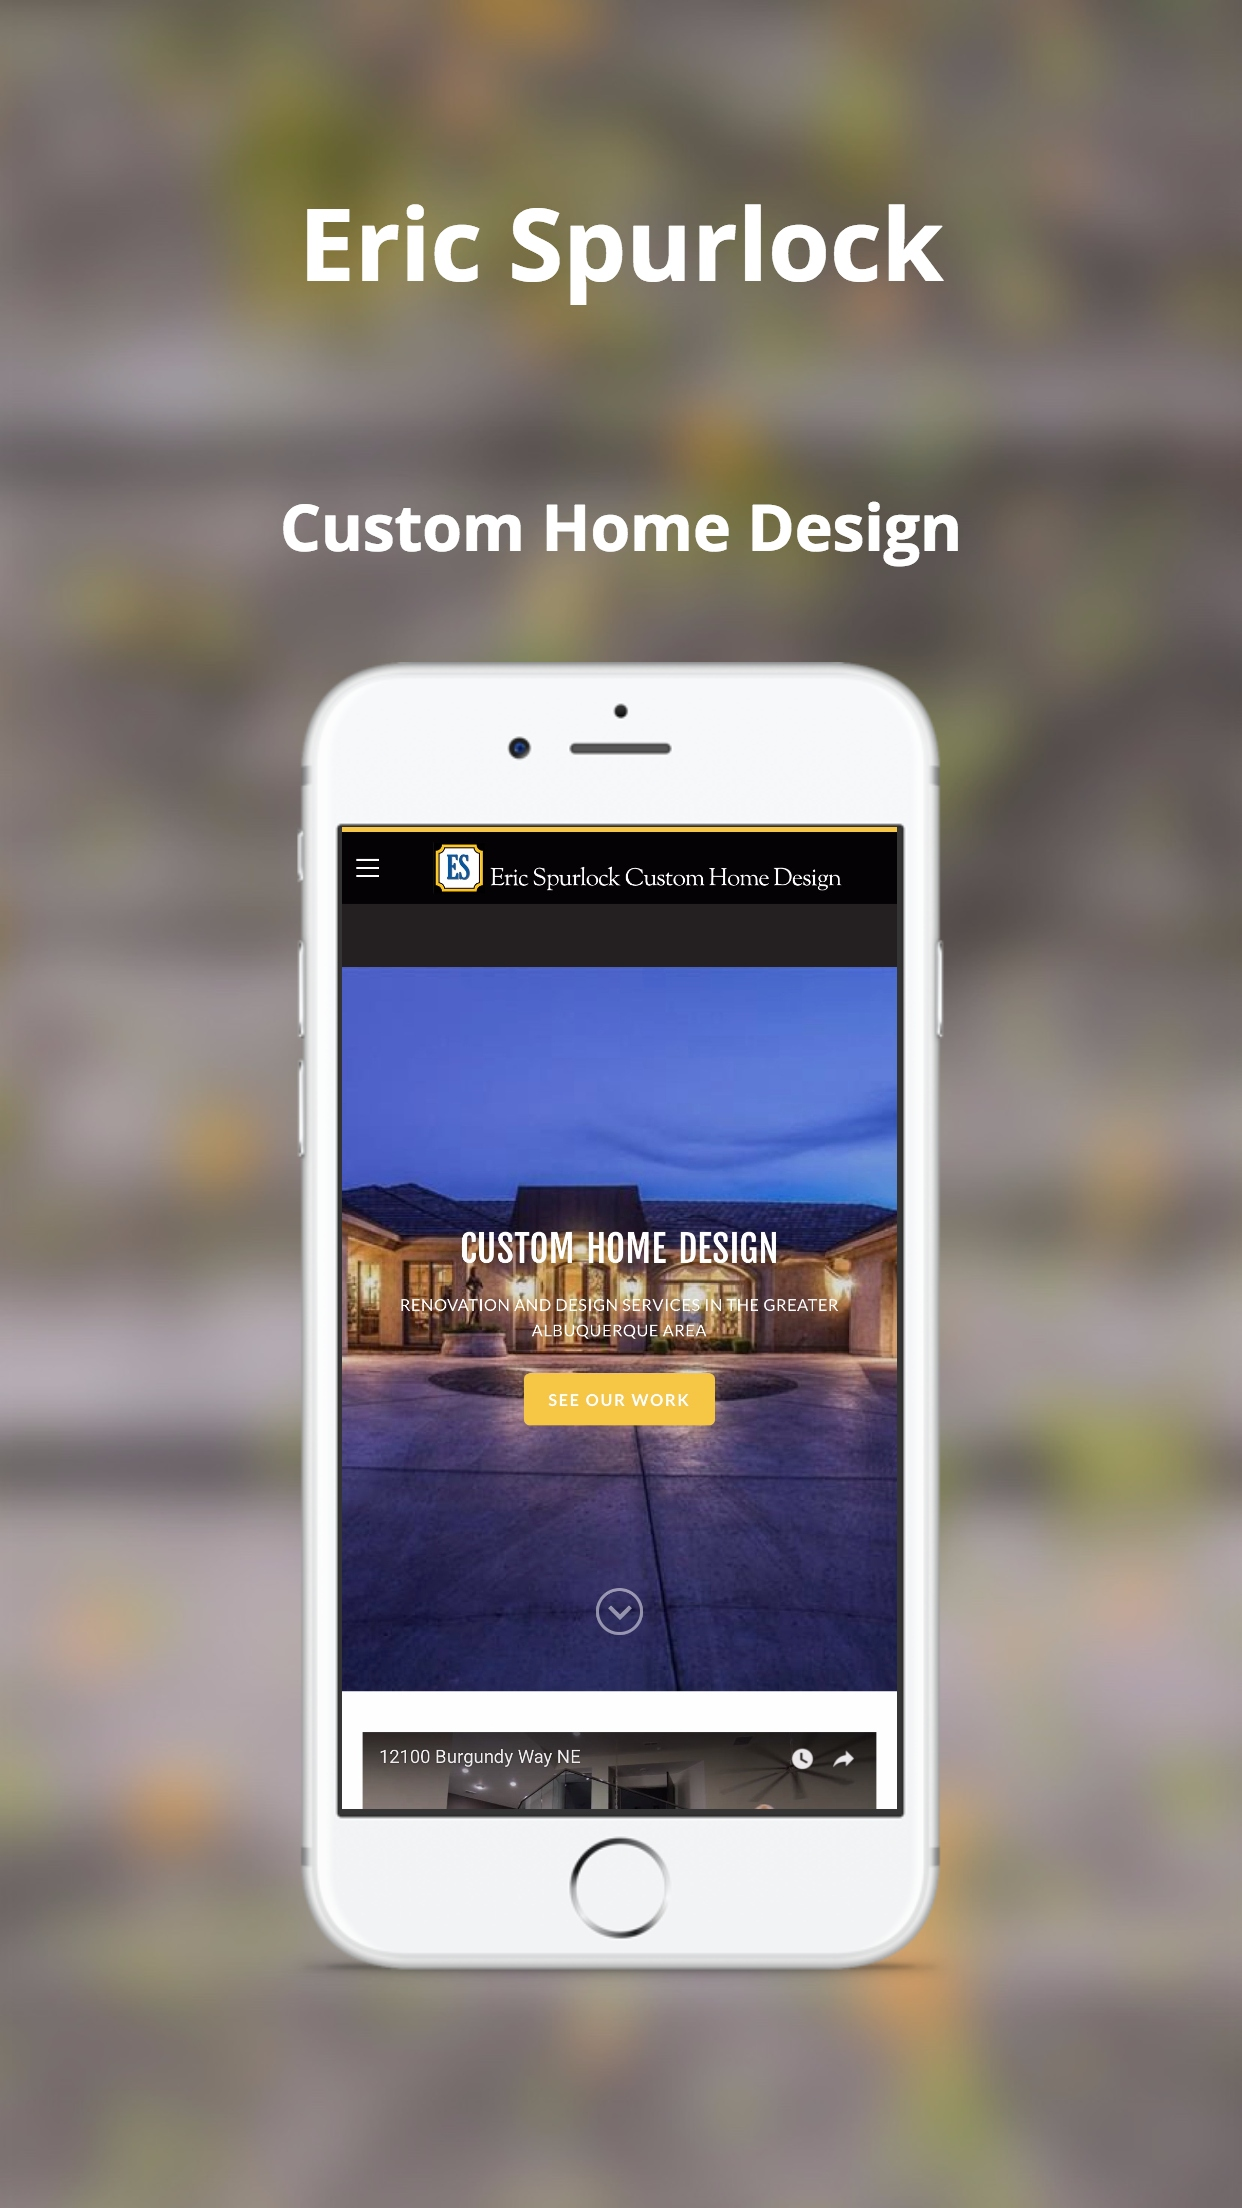 Eric Spurlock Custom Home Design on iPhone